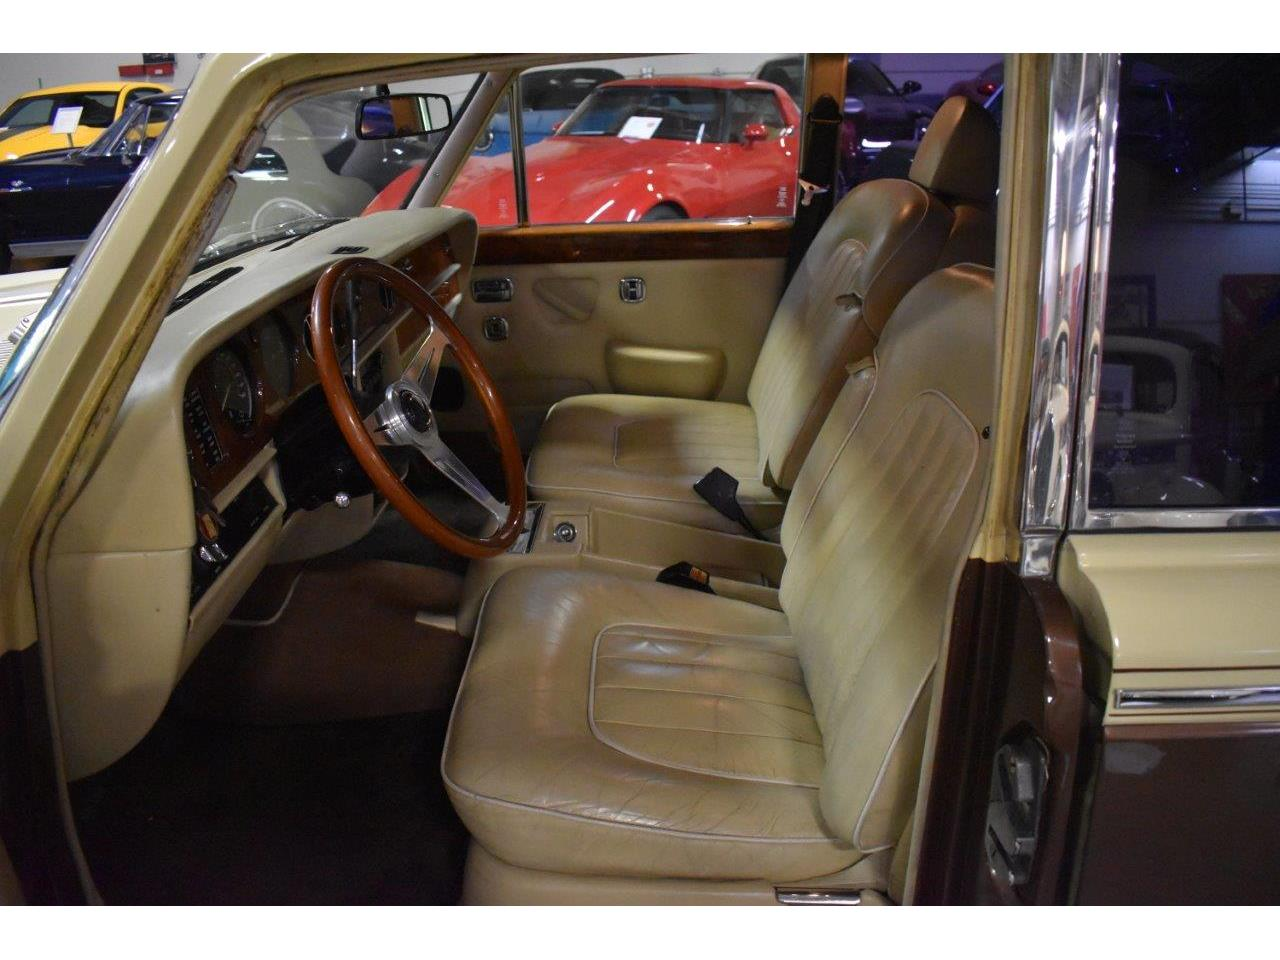 1978 Rolls-Royce Silver Shadow II (CC-1329137) for sale in Costa Mesa, California